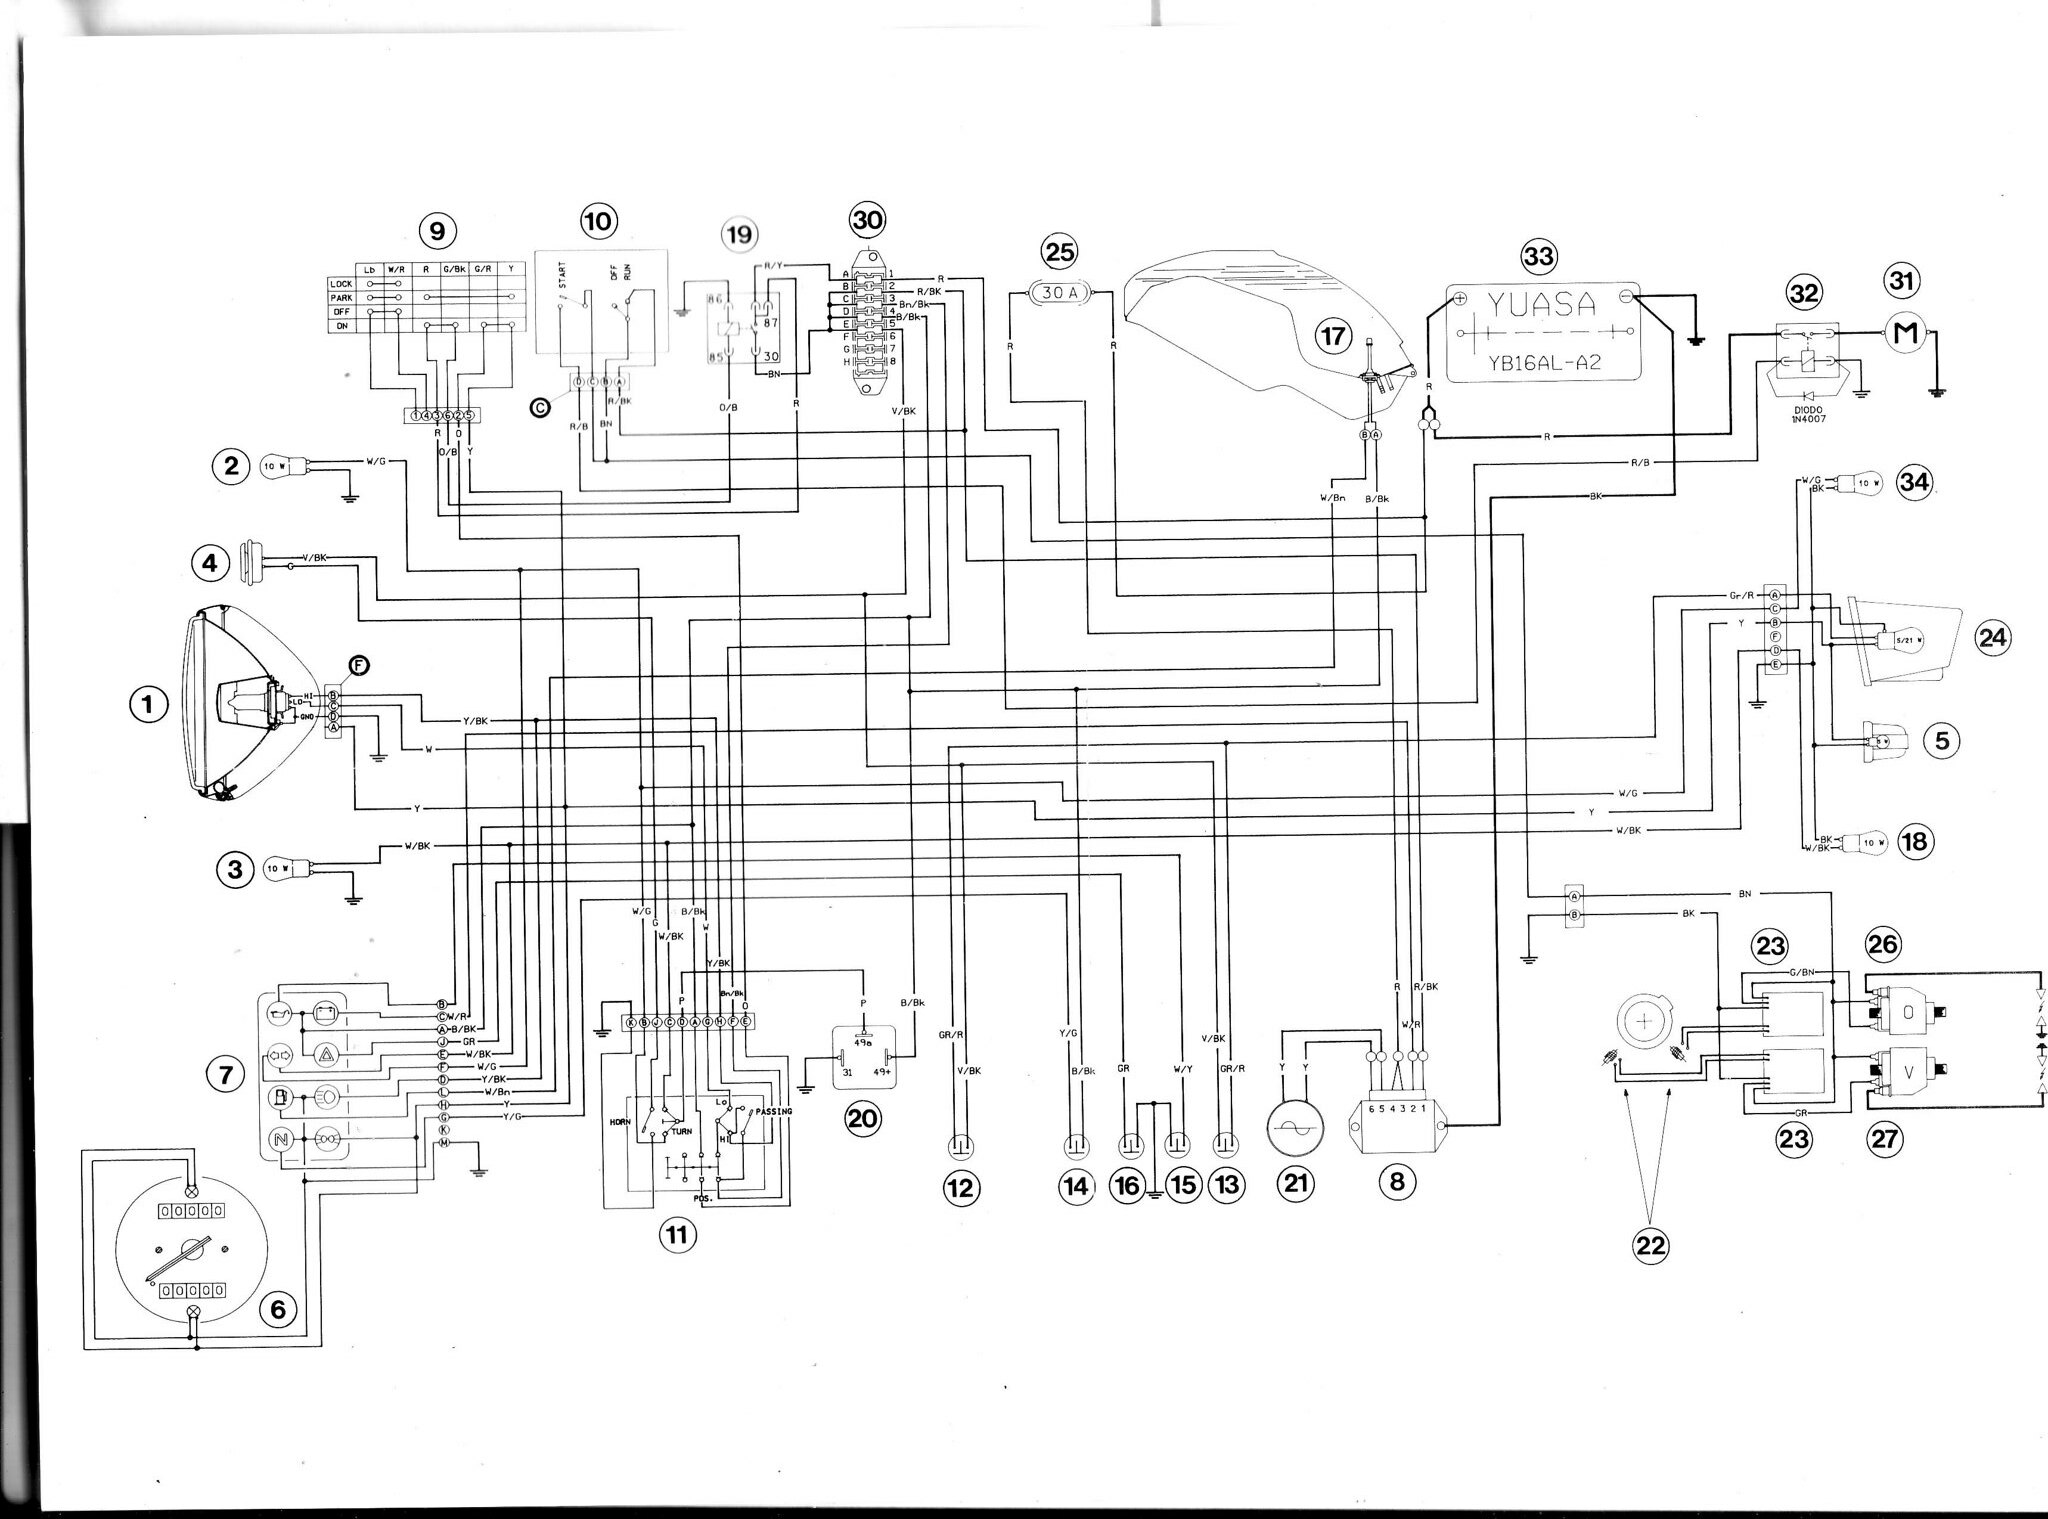 Ducati Monster S2r 1000 Wiring Diagram Free Download Wiring Ducati Ignition Switch Wiring Diagram 2004 Ultranautics Wiring Diagram VL800 Wiring Schematic At IT-Energia.com